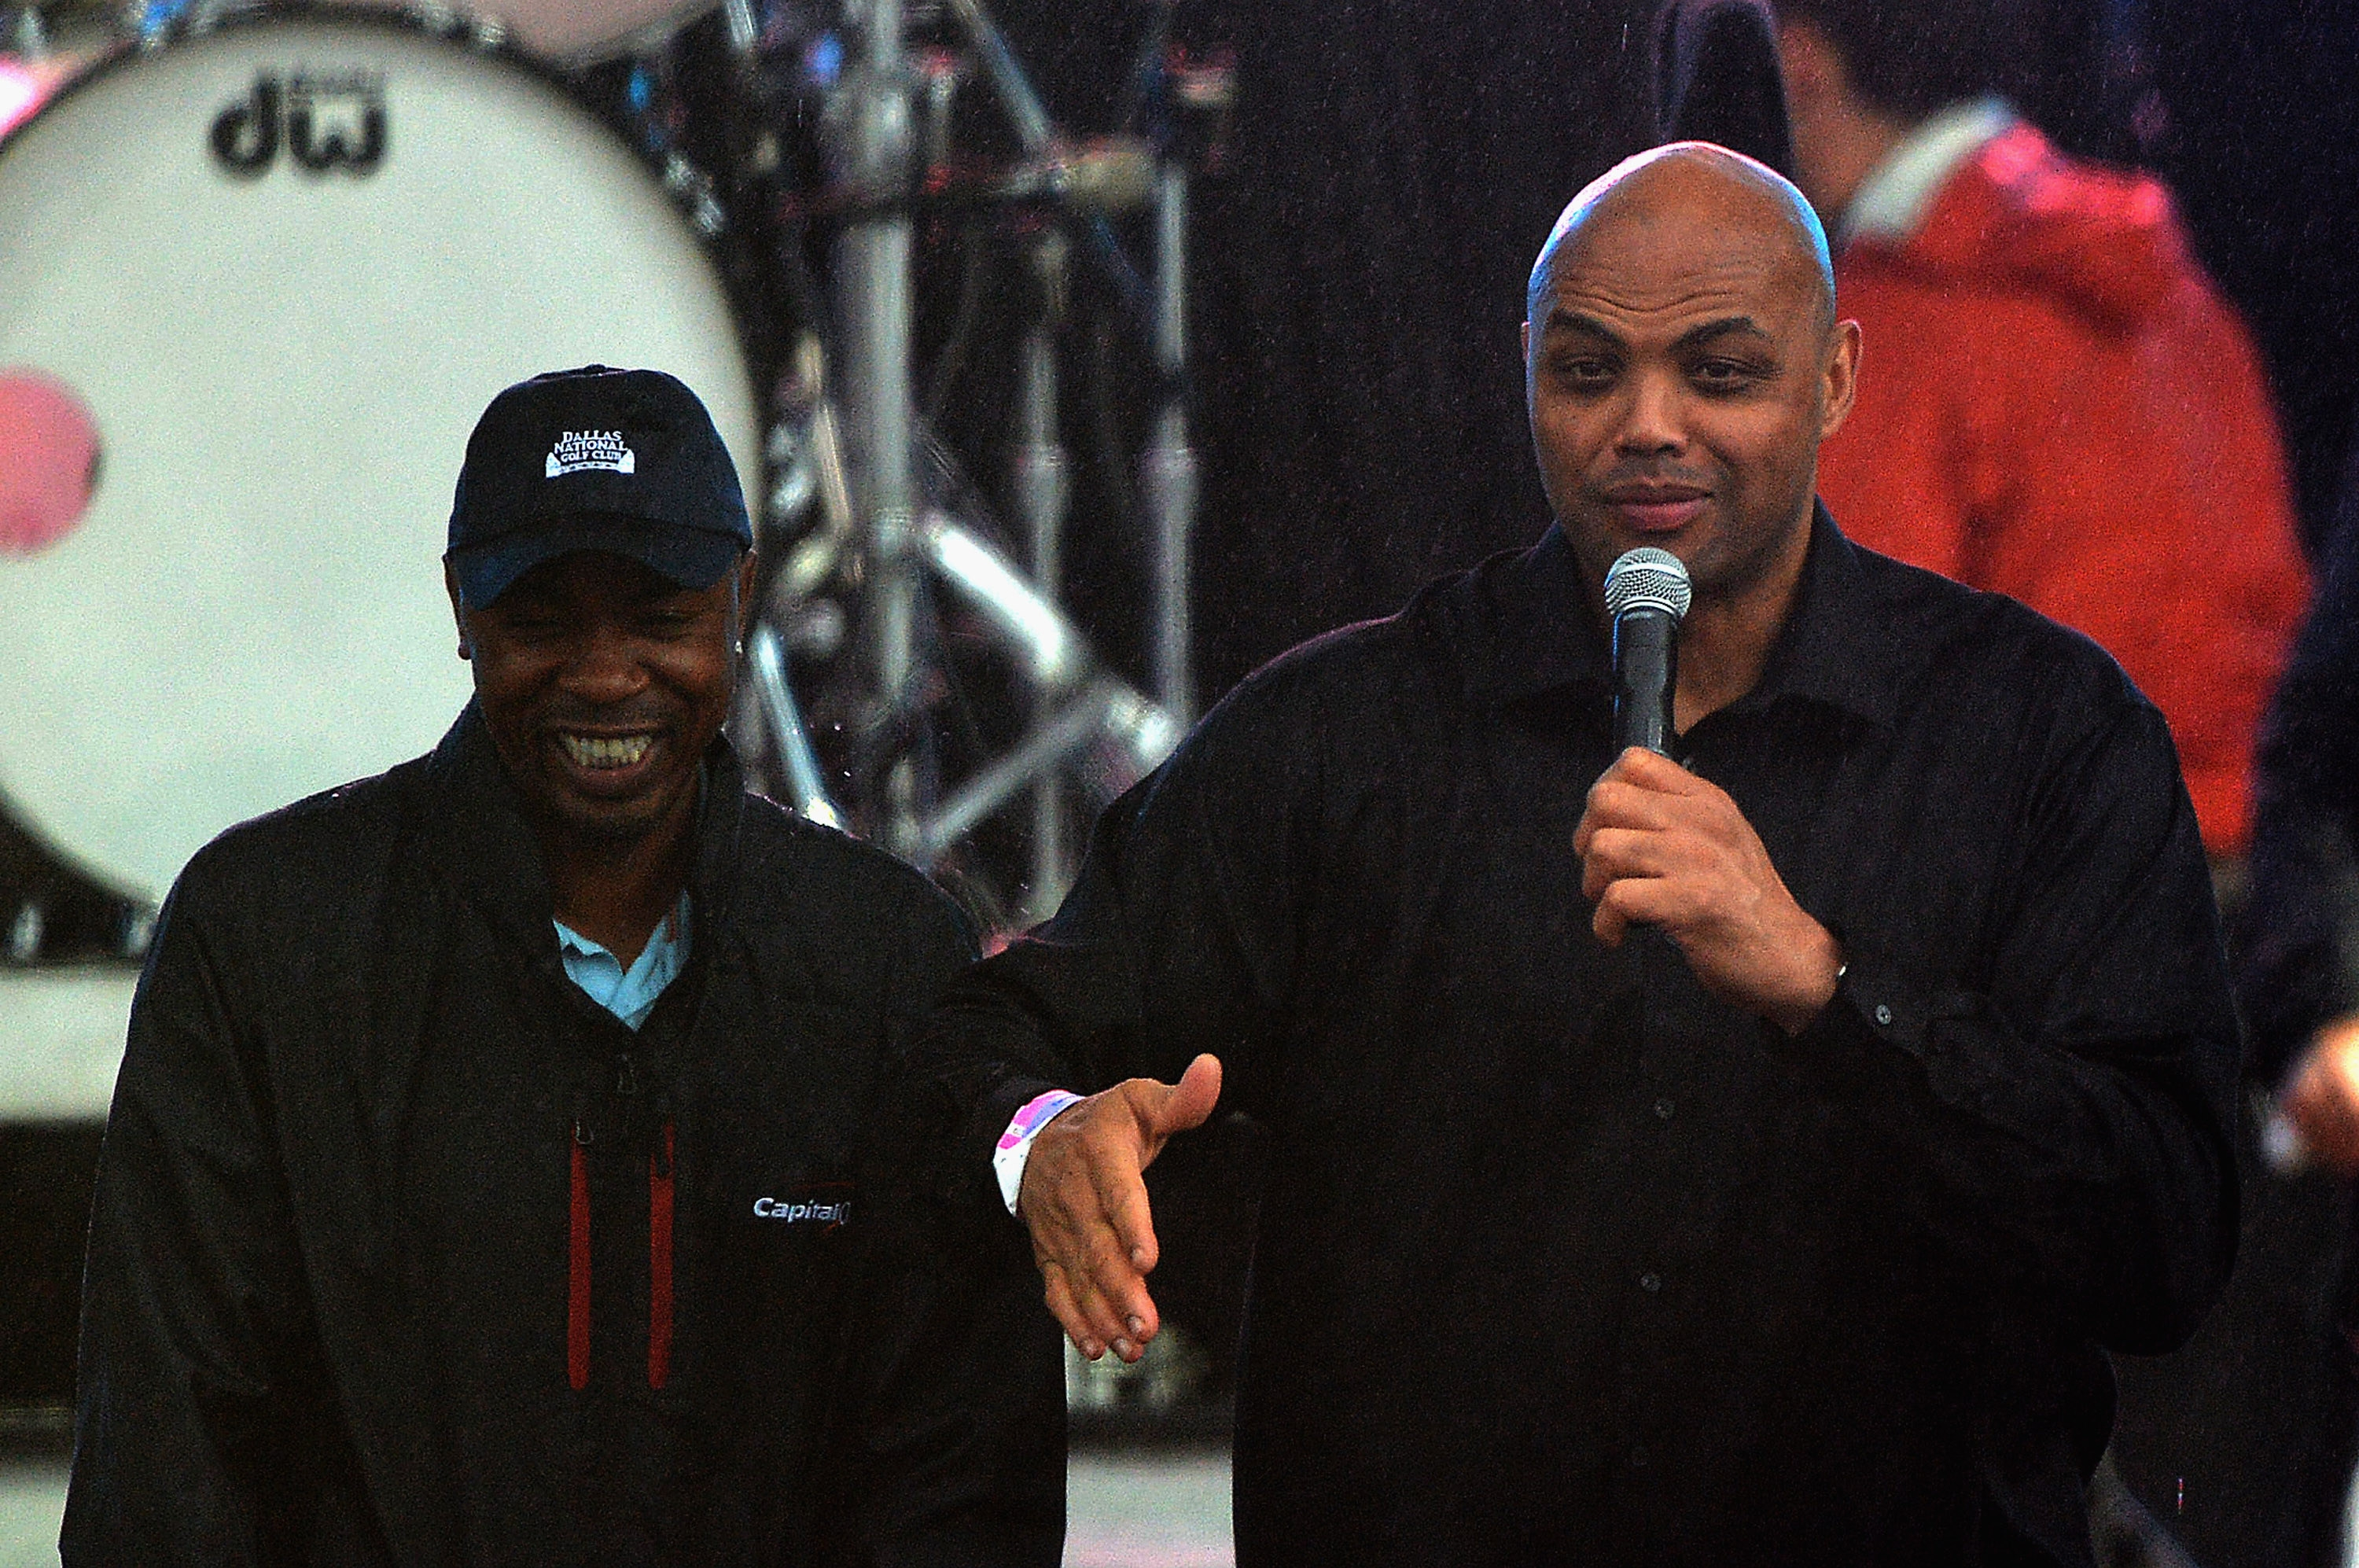 Charles Barkley is the linchpin of a witty cast on TNT's NBA studio show.